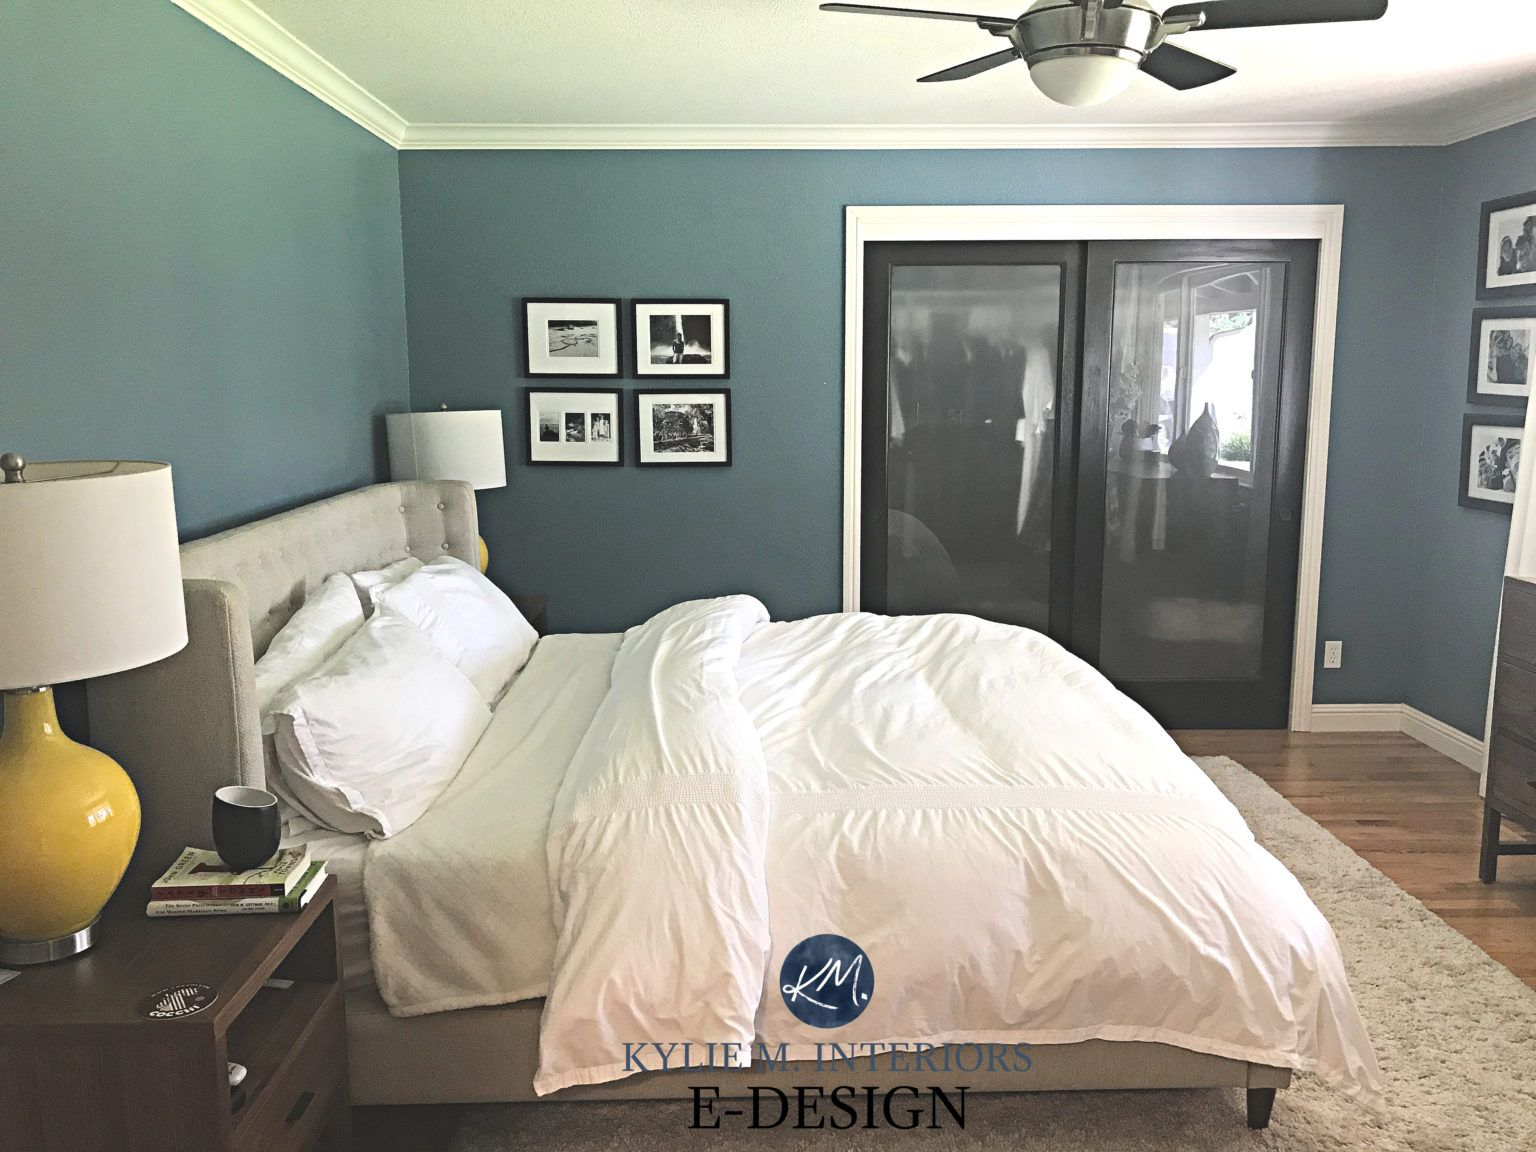 The 8 Best Blue And Green Blend Paint Colours Benjamin Moore And Sherwin Williams In 2021 Teal Paint Colors Blue Green Bedrooms Blue Green Paints Bedroom blue paint colors